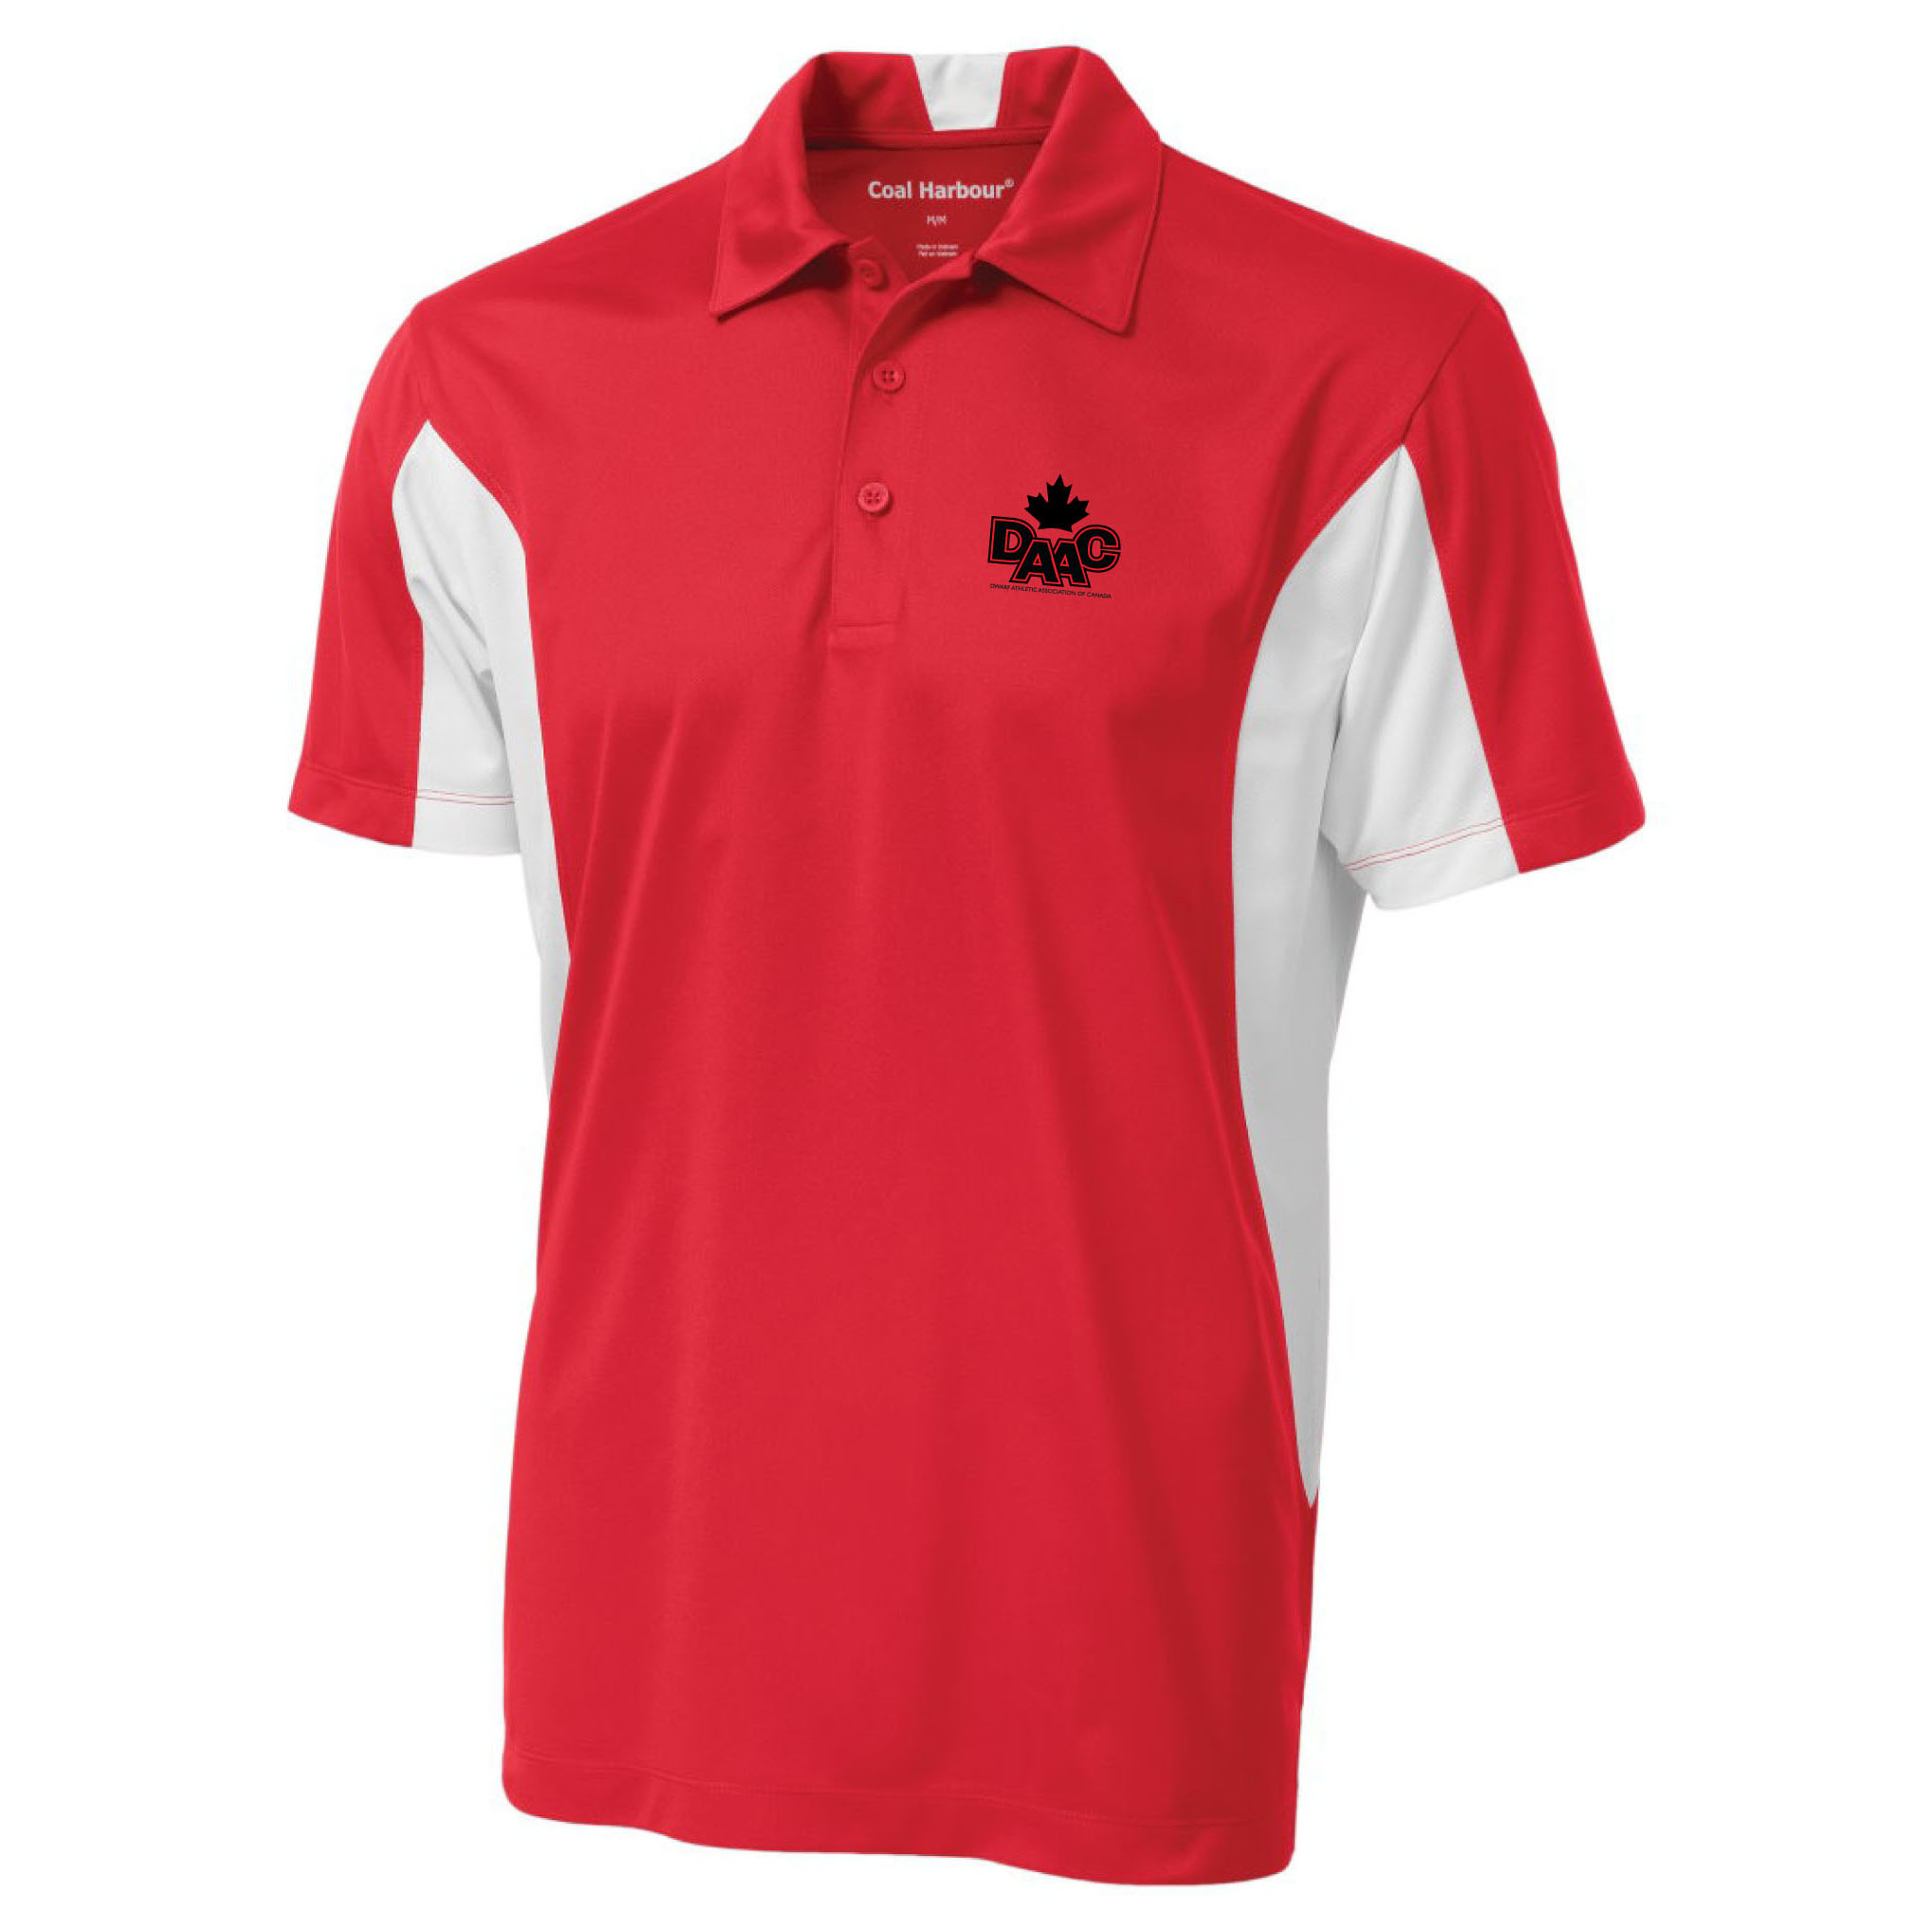 sports polo shirts design